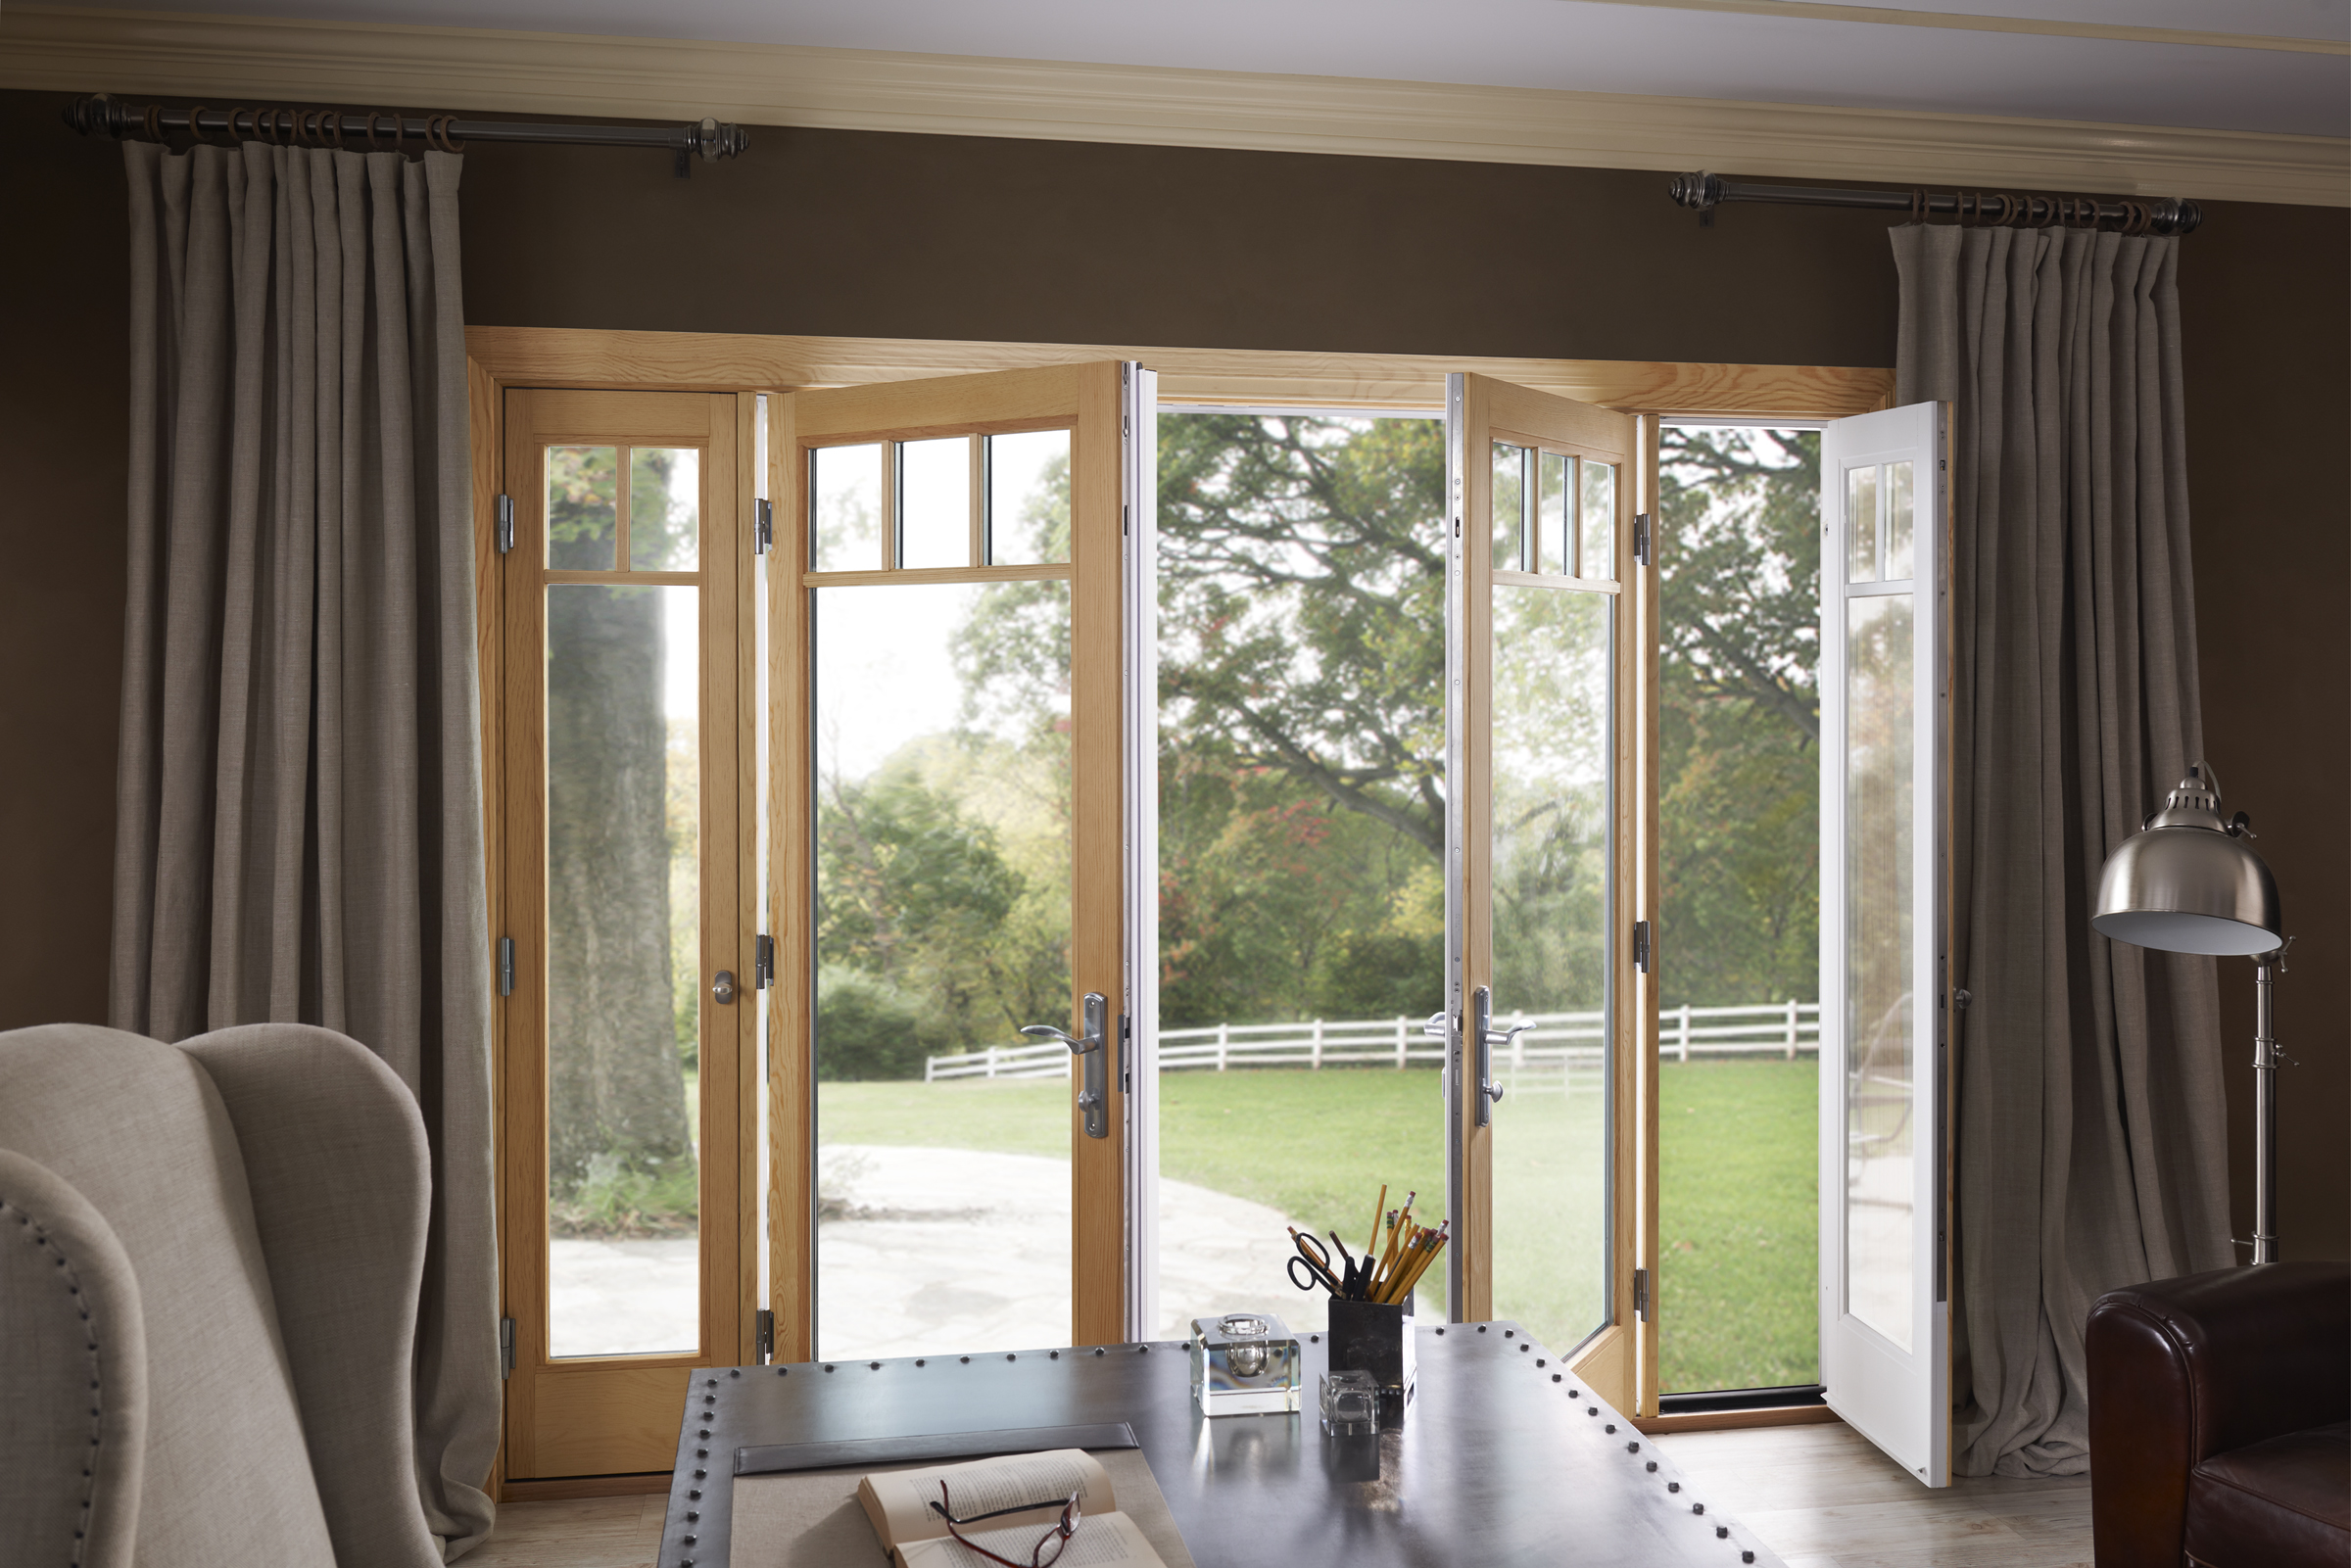 Hinged patio doors for French doors with side windows that open